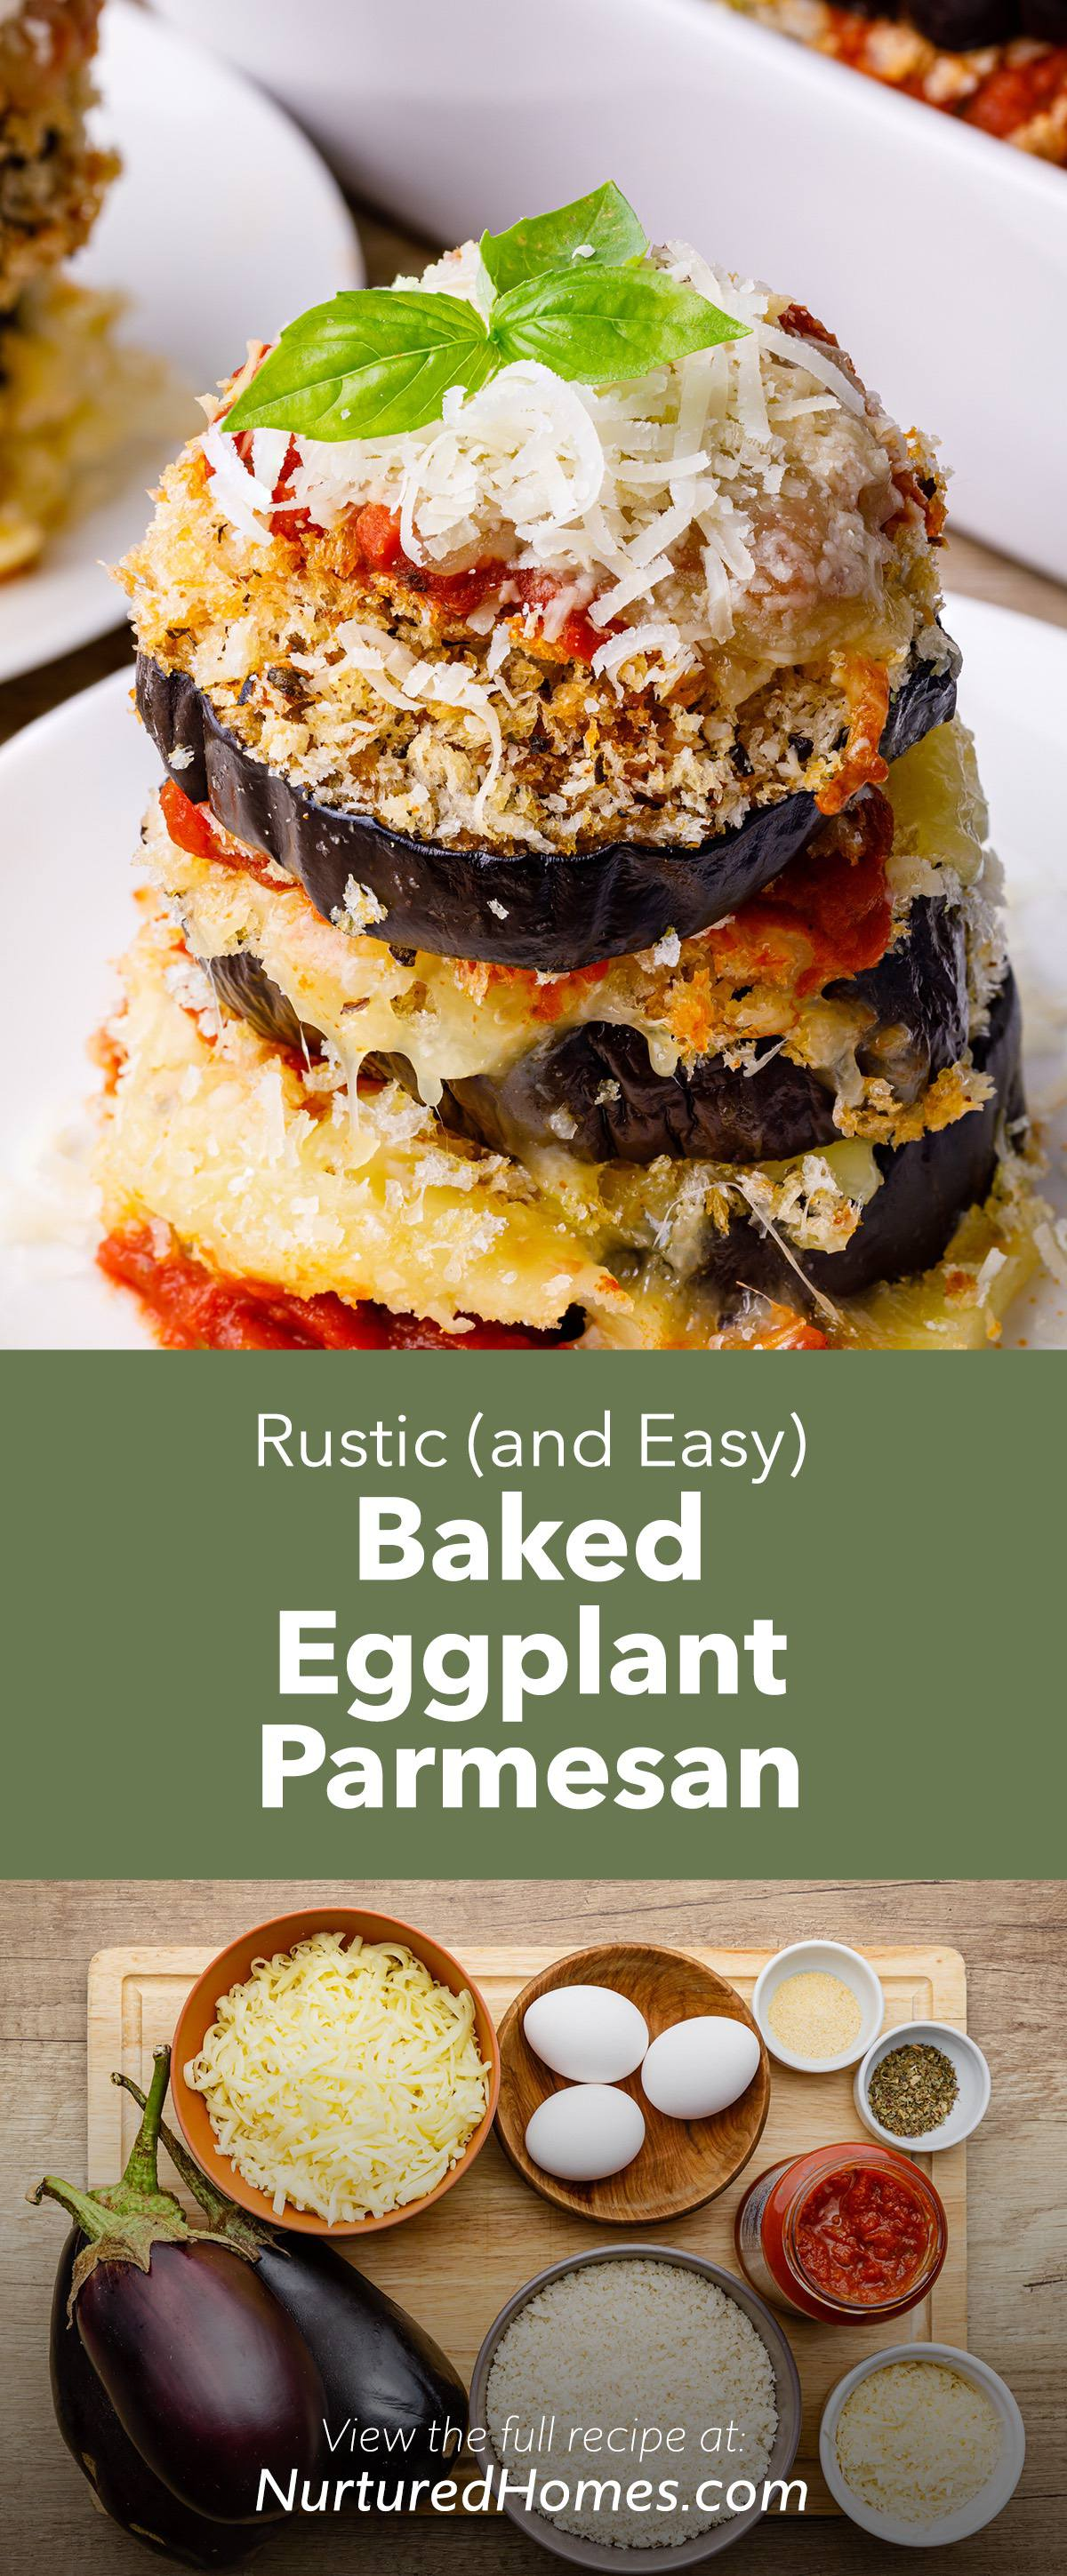 Rustic (and Easy) Baked Eggplant Parmesan Recipe